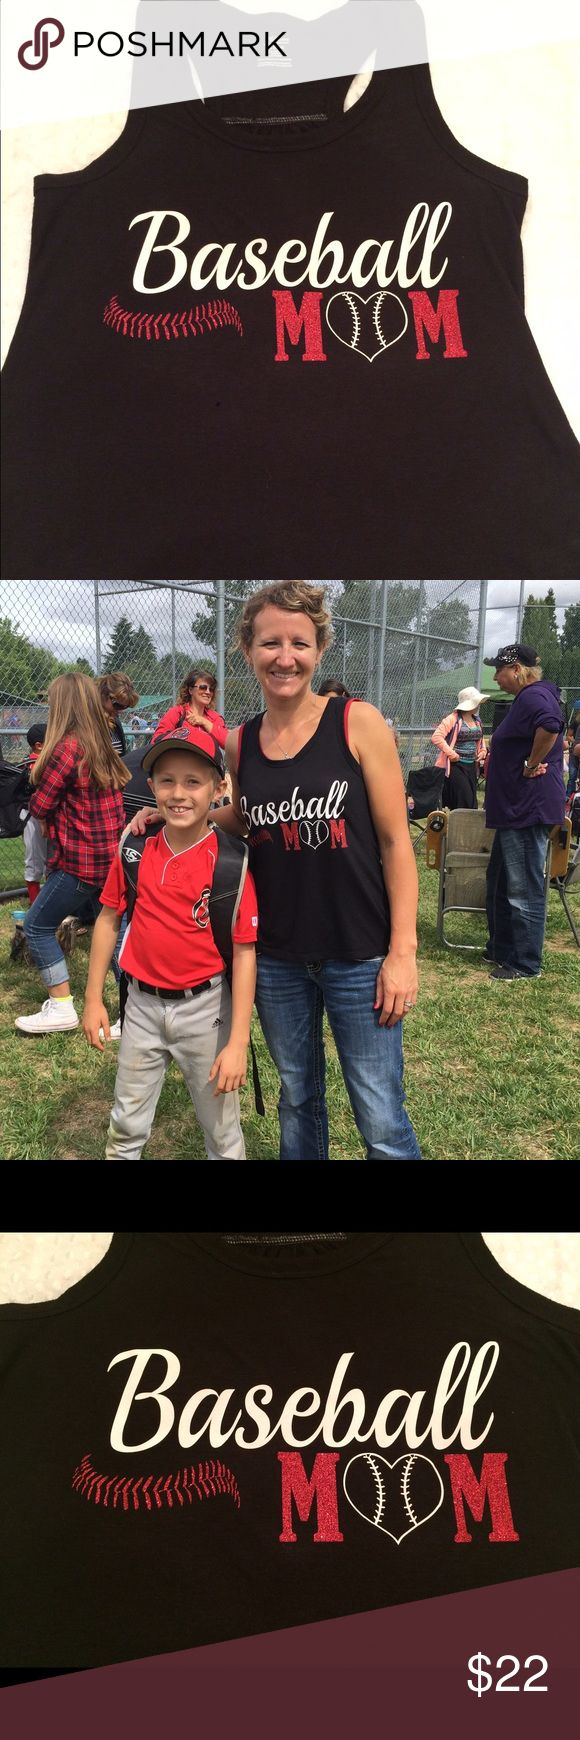 """NEW Baseball Mom tank custom sports racerback Custom tank with """"Baseball MOM"""" on it. Show your support year round!! Available in more colors/sizes. Tops Tank Tops"""